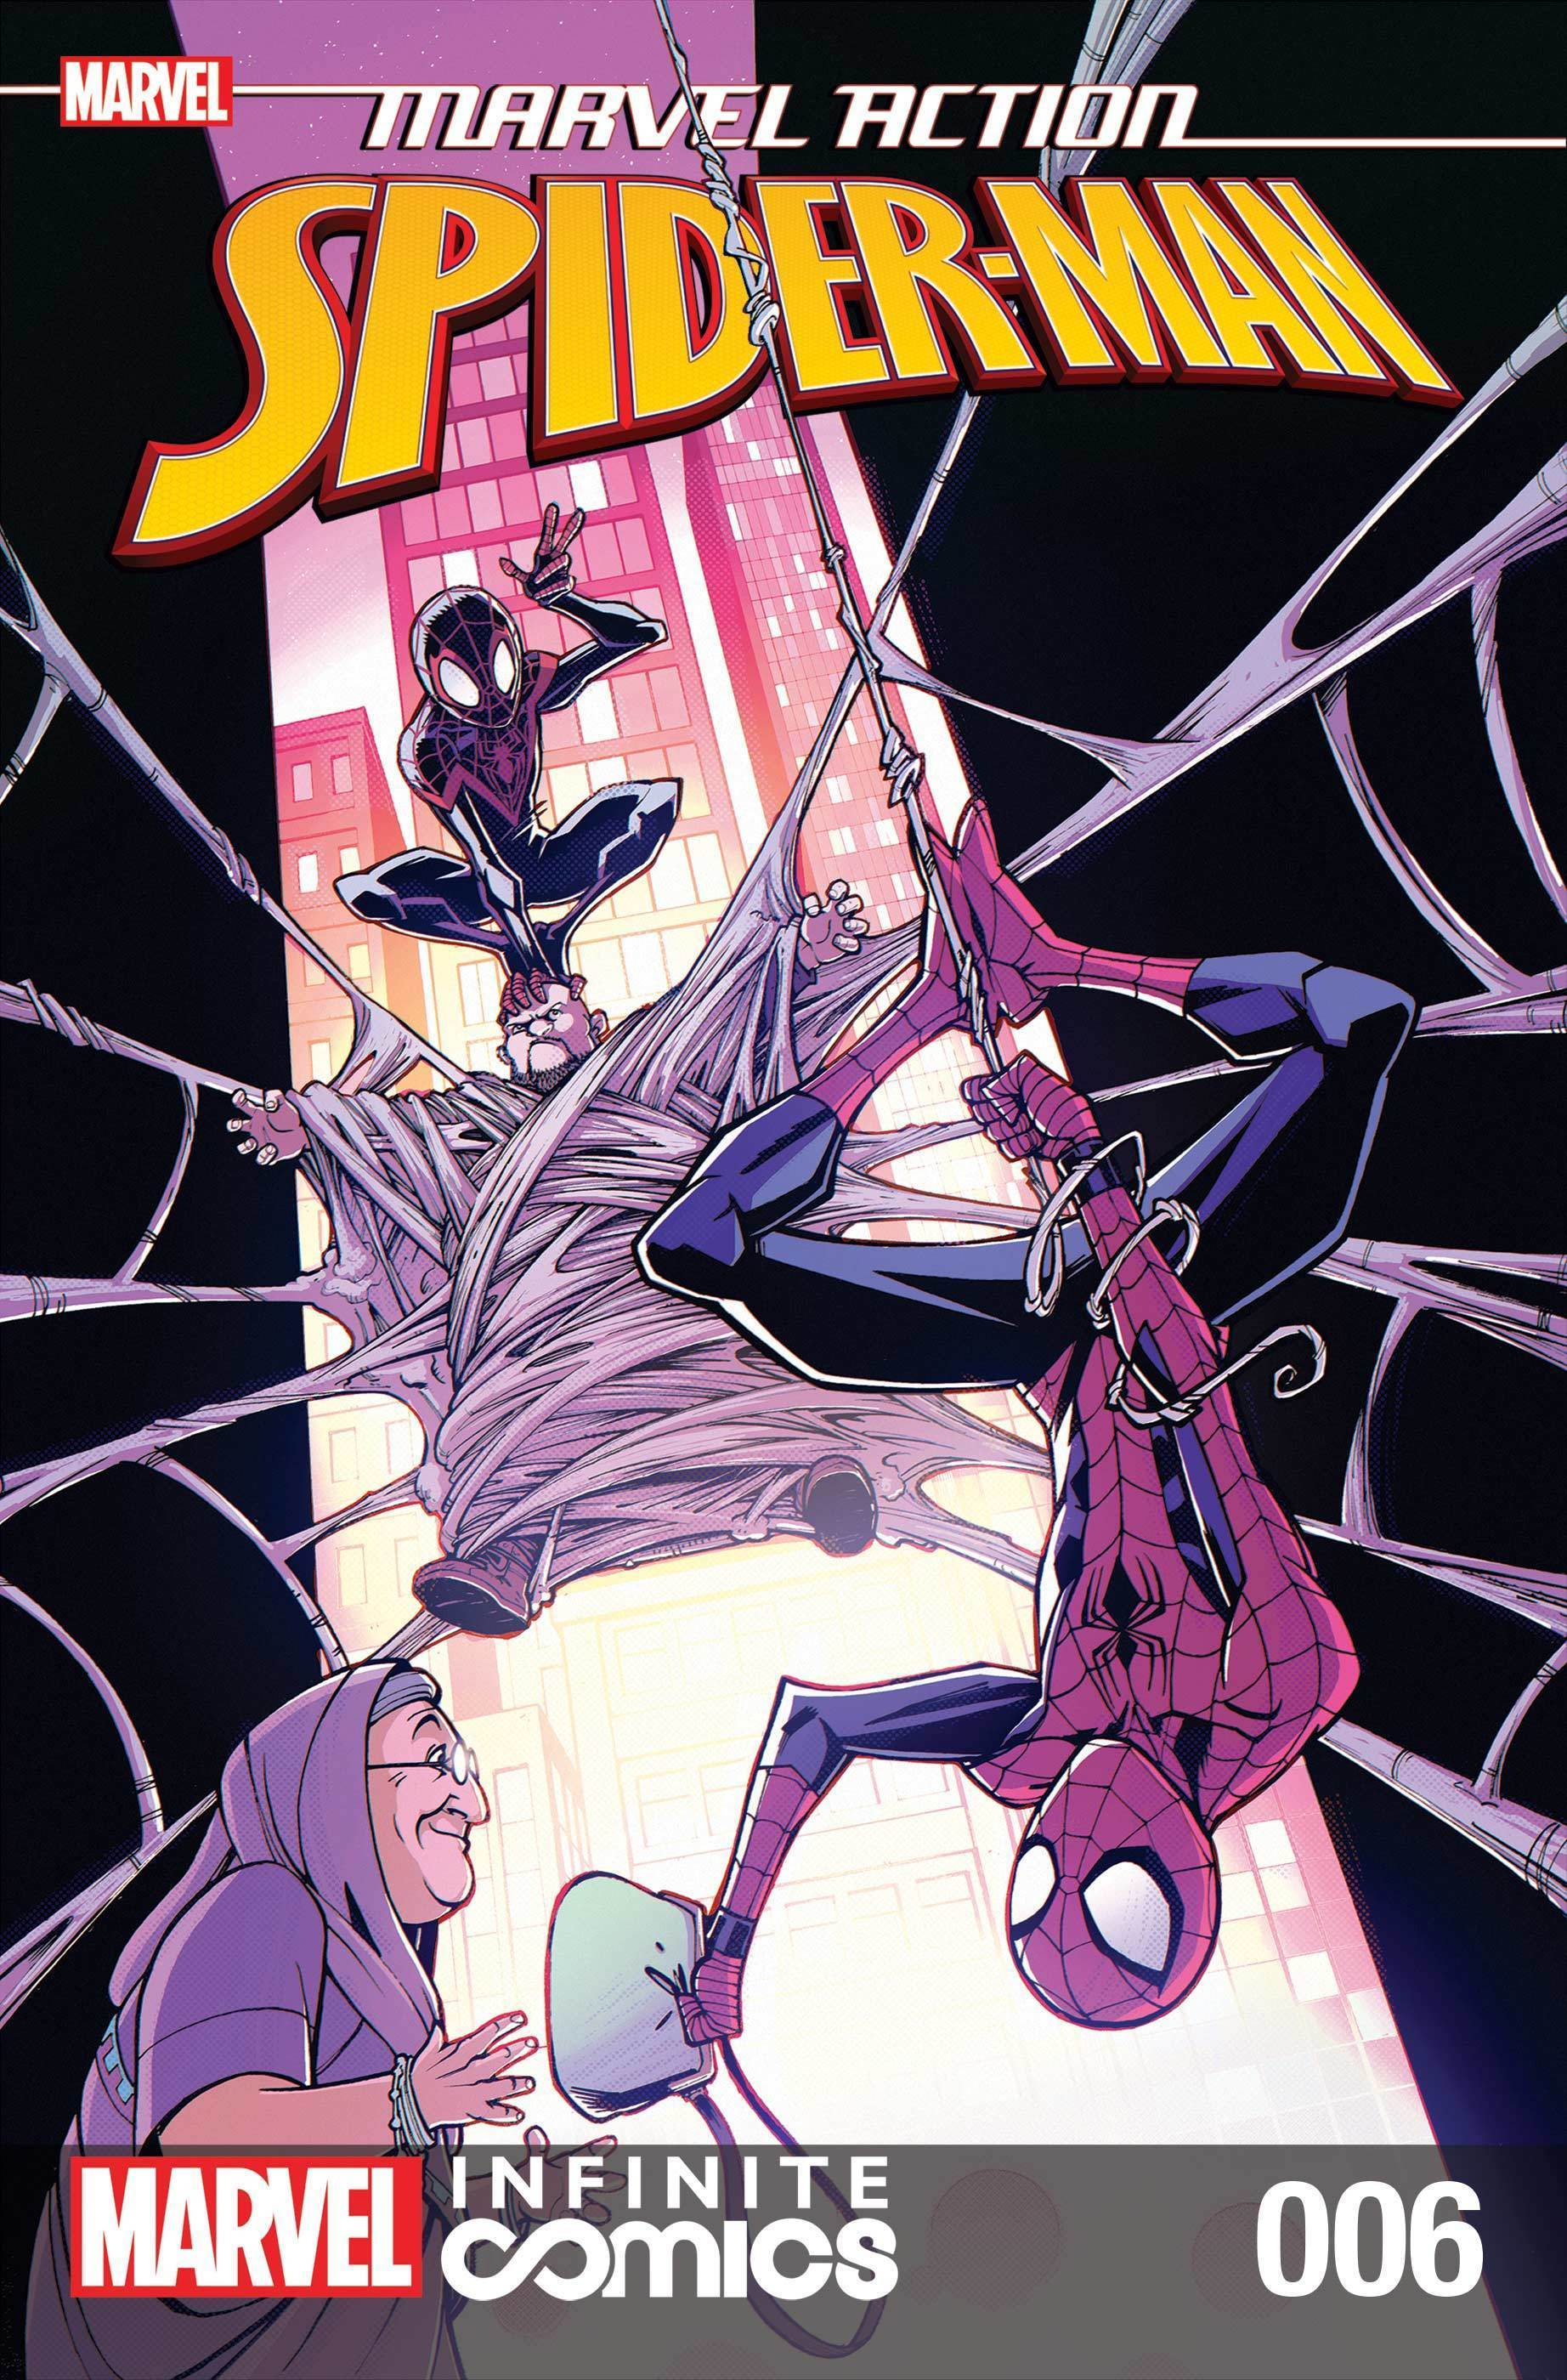 Marvel Action Spider-Man #06